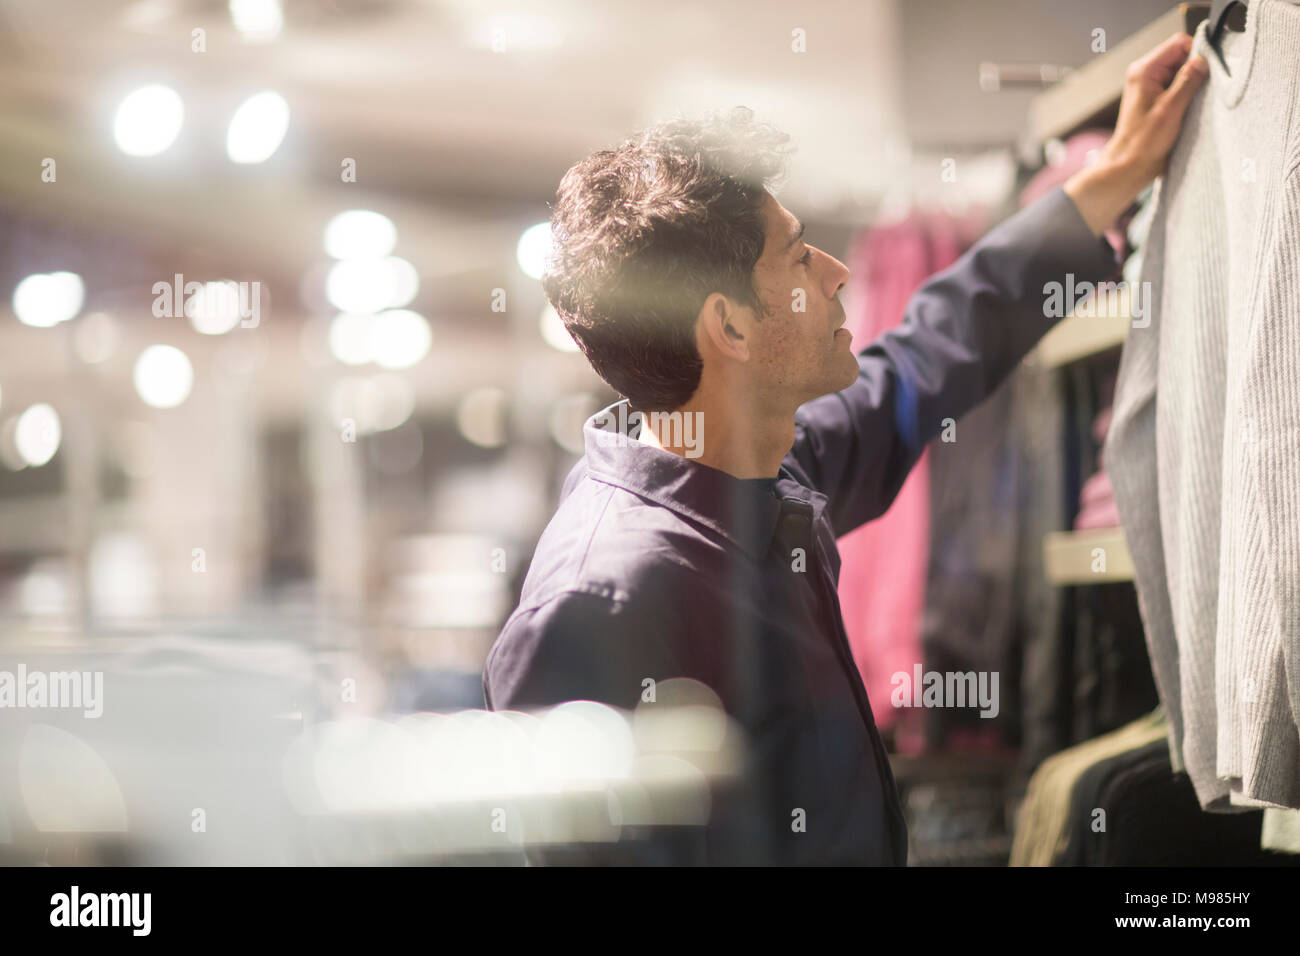 Man choosing clothes in shop - Stock Image